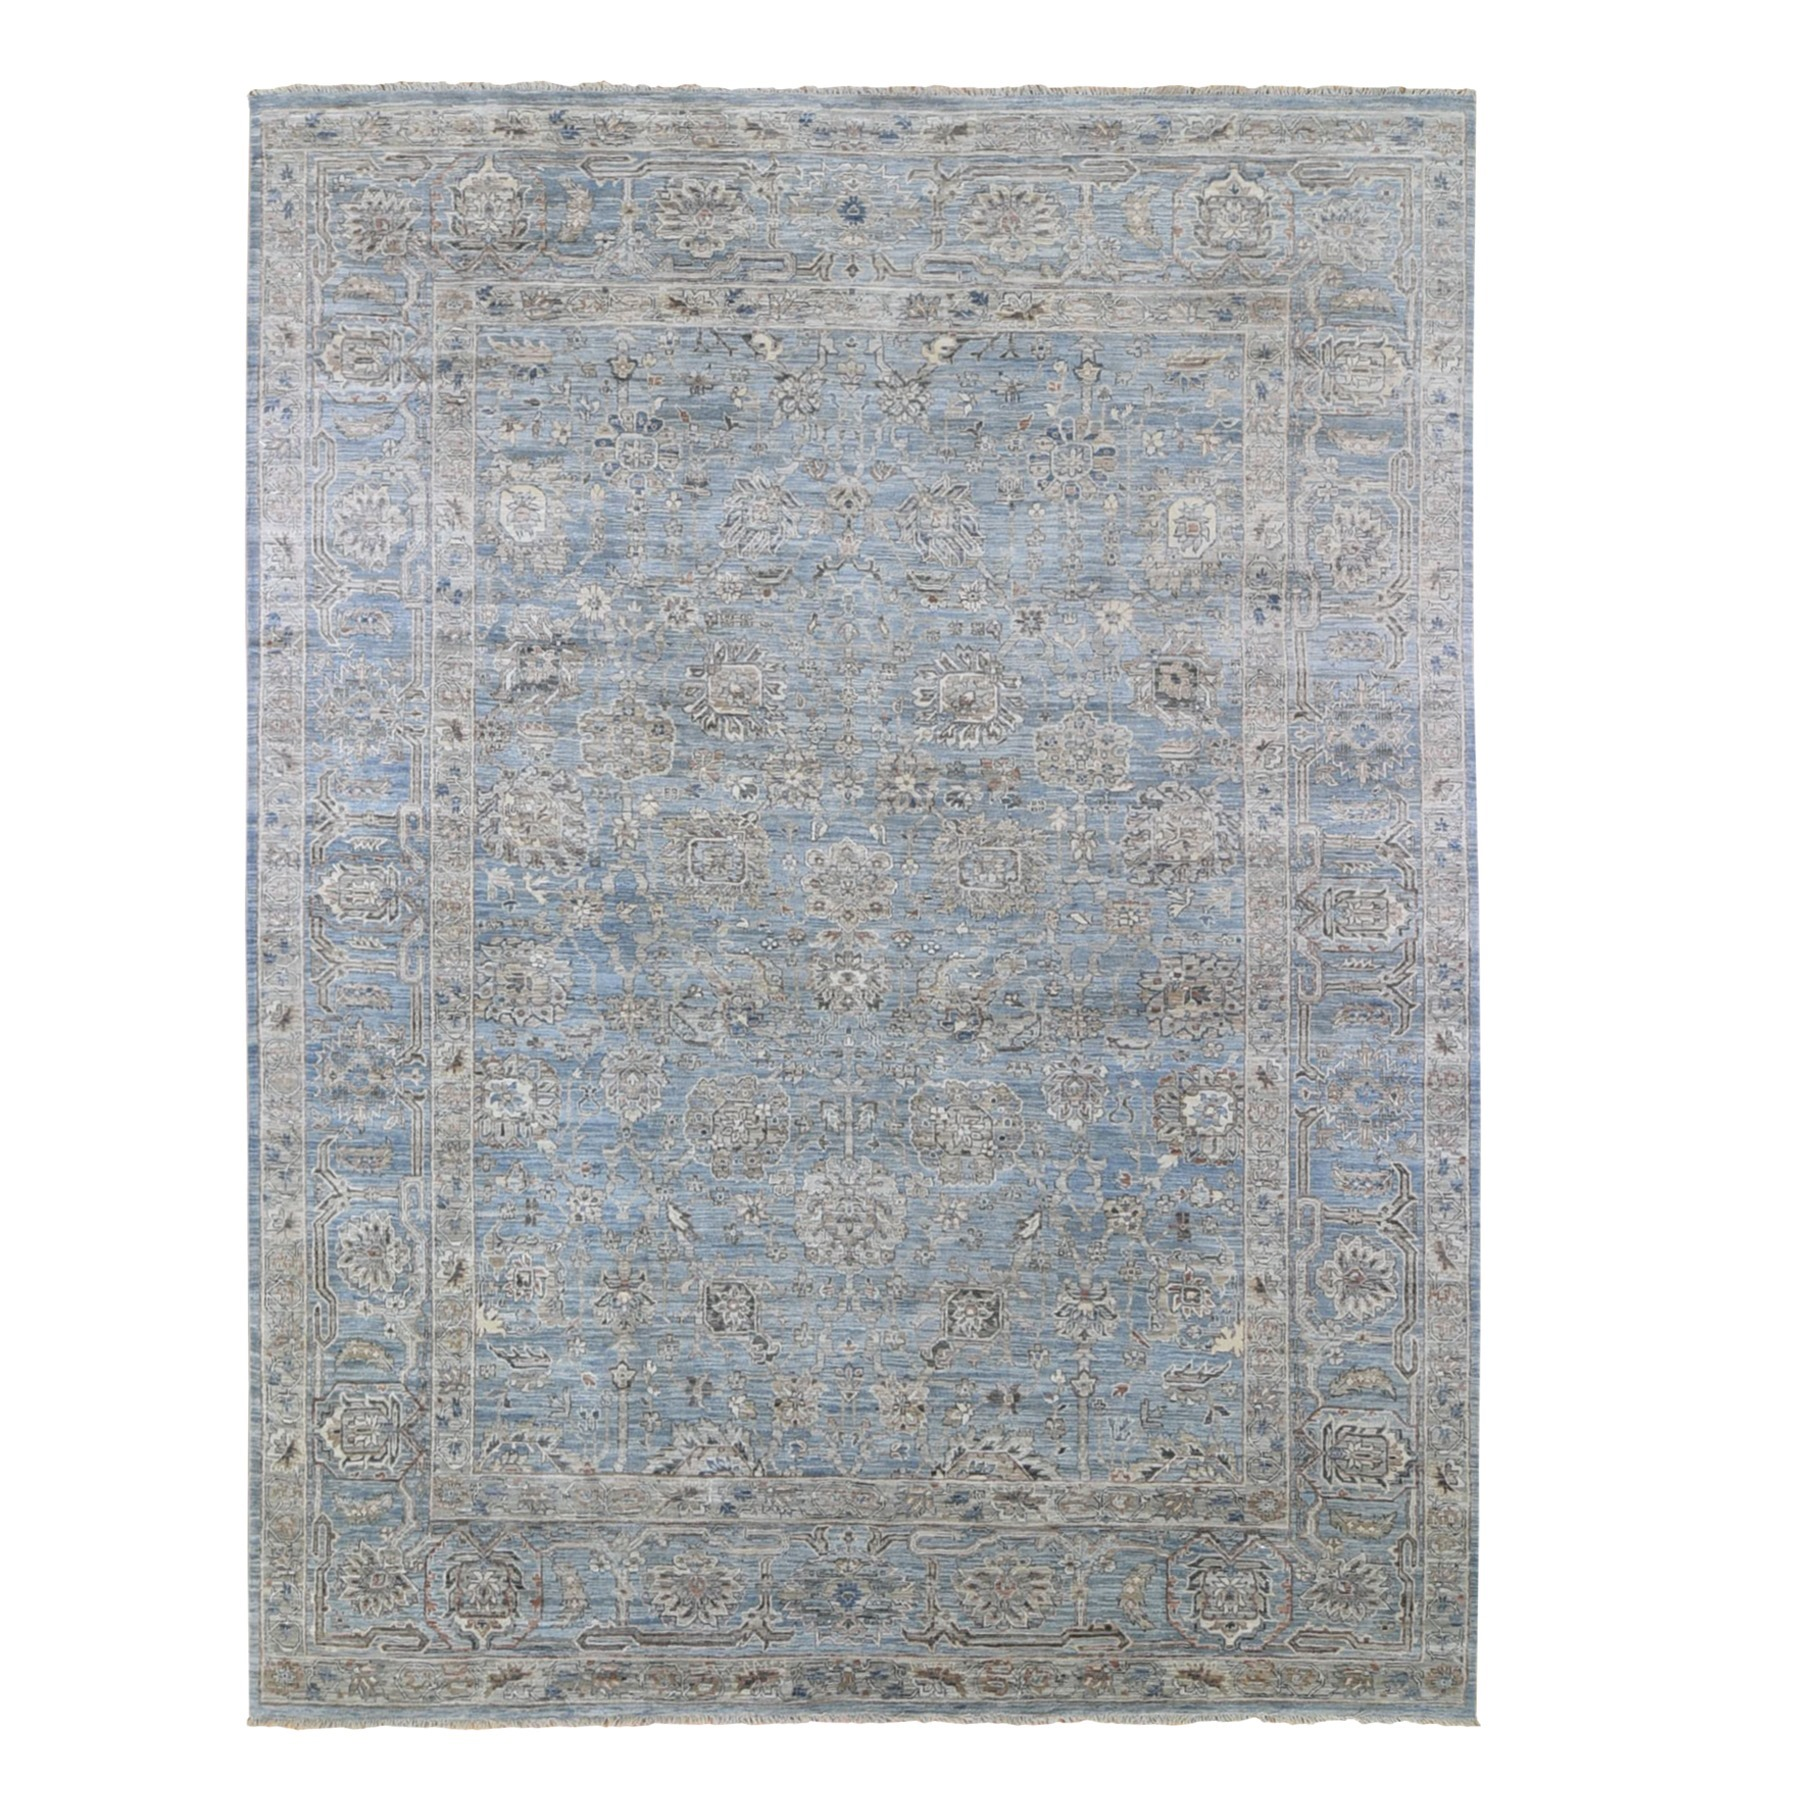 Agra And Turkish Collection Hand Knotted Blue Rug No: 1132956